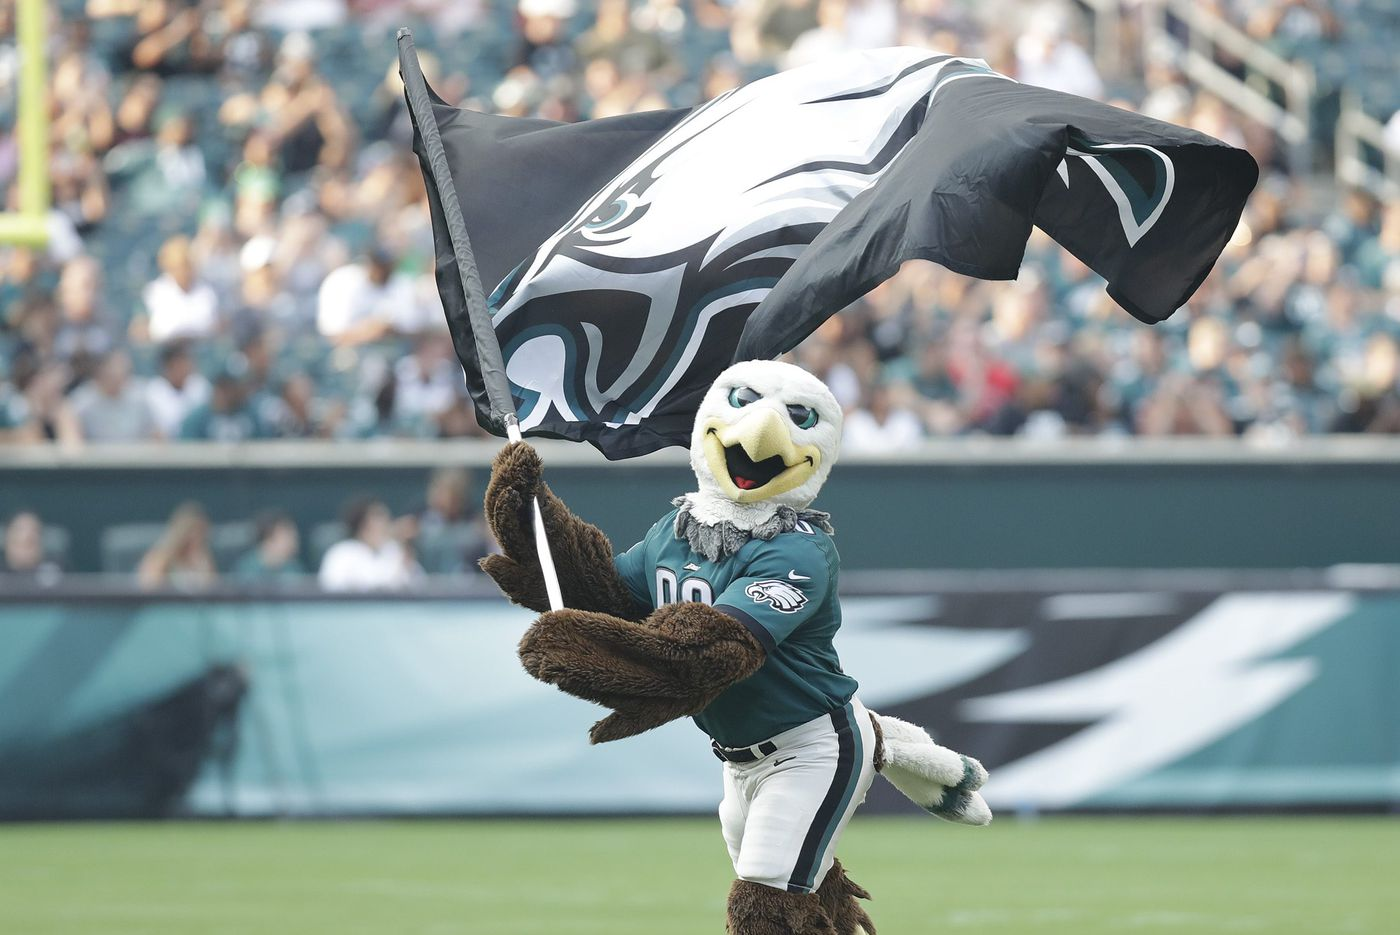 Eagles' season opener guide: SEPTA, tailgating, NFL Kickoff Experience, weather and more